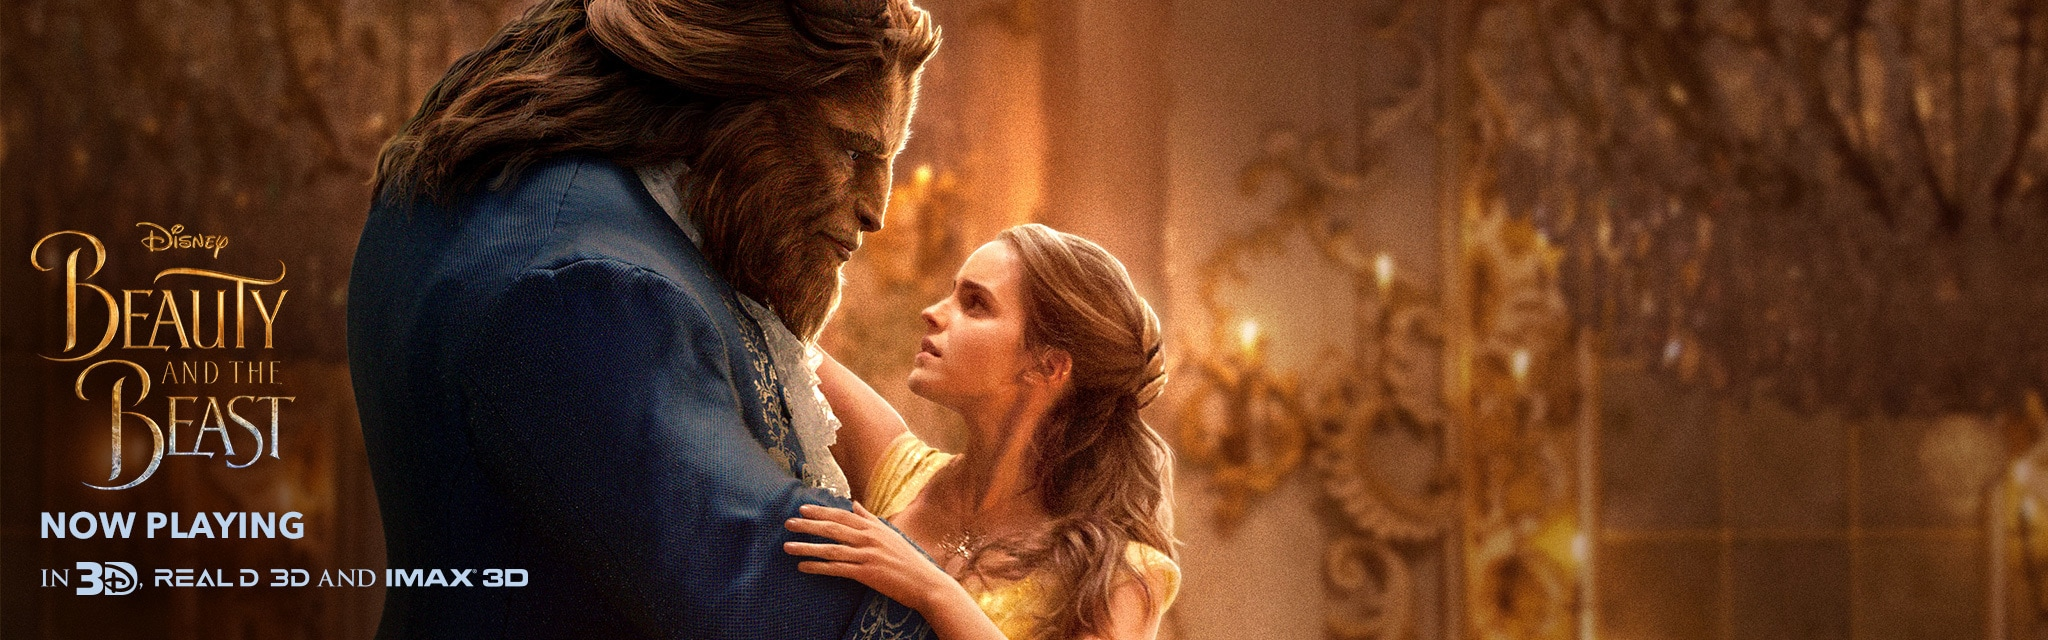 Beauty and the Beast - Tickets - Hero